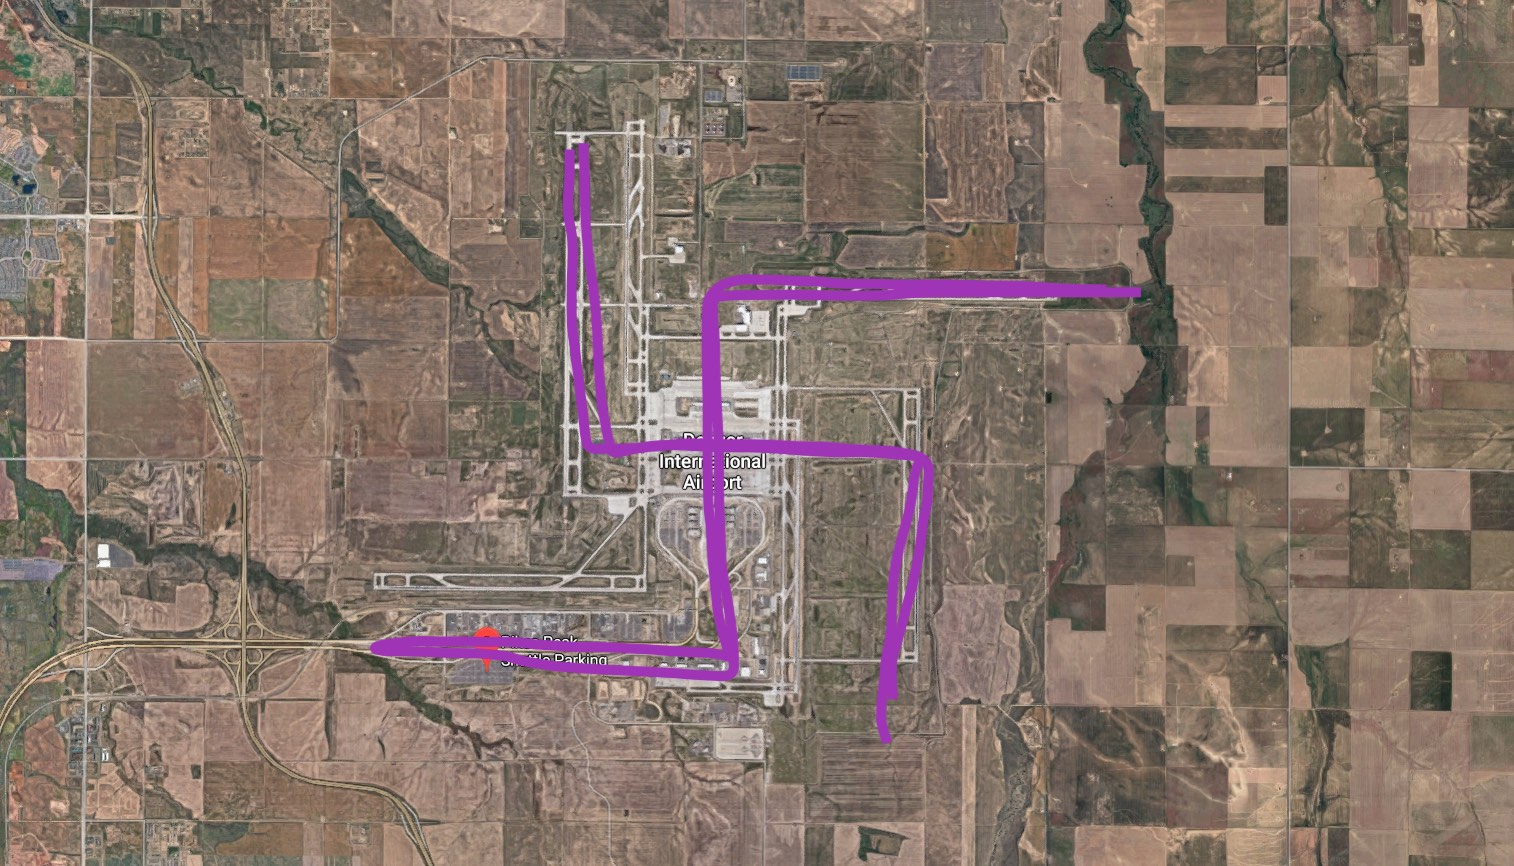 Denver Airport Runway Map We Analysed Evidence That the Denver Airport Is the Illuminati